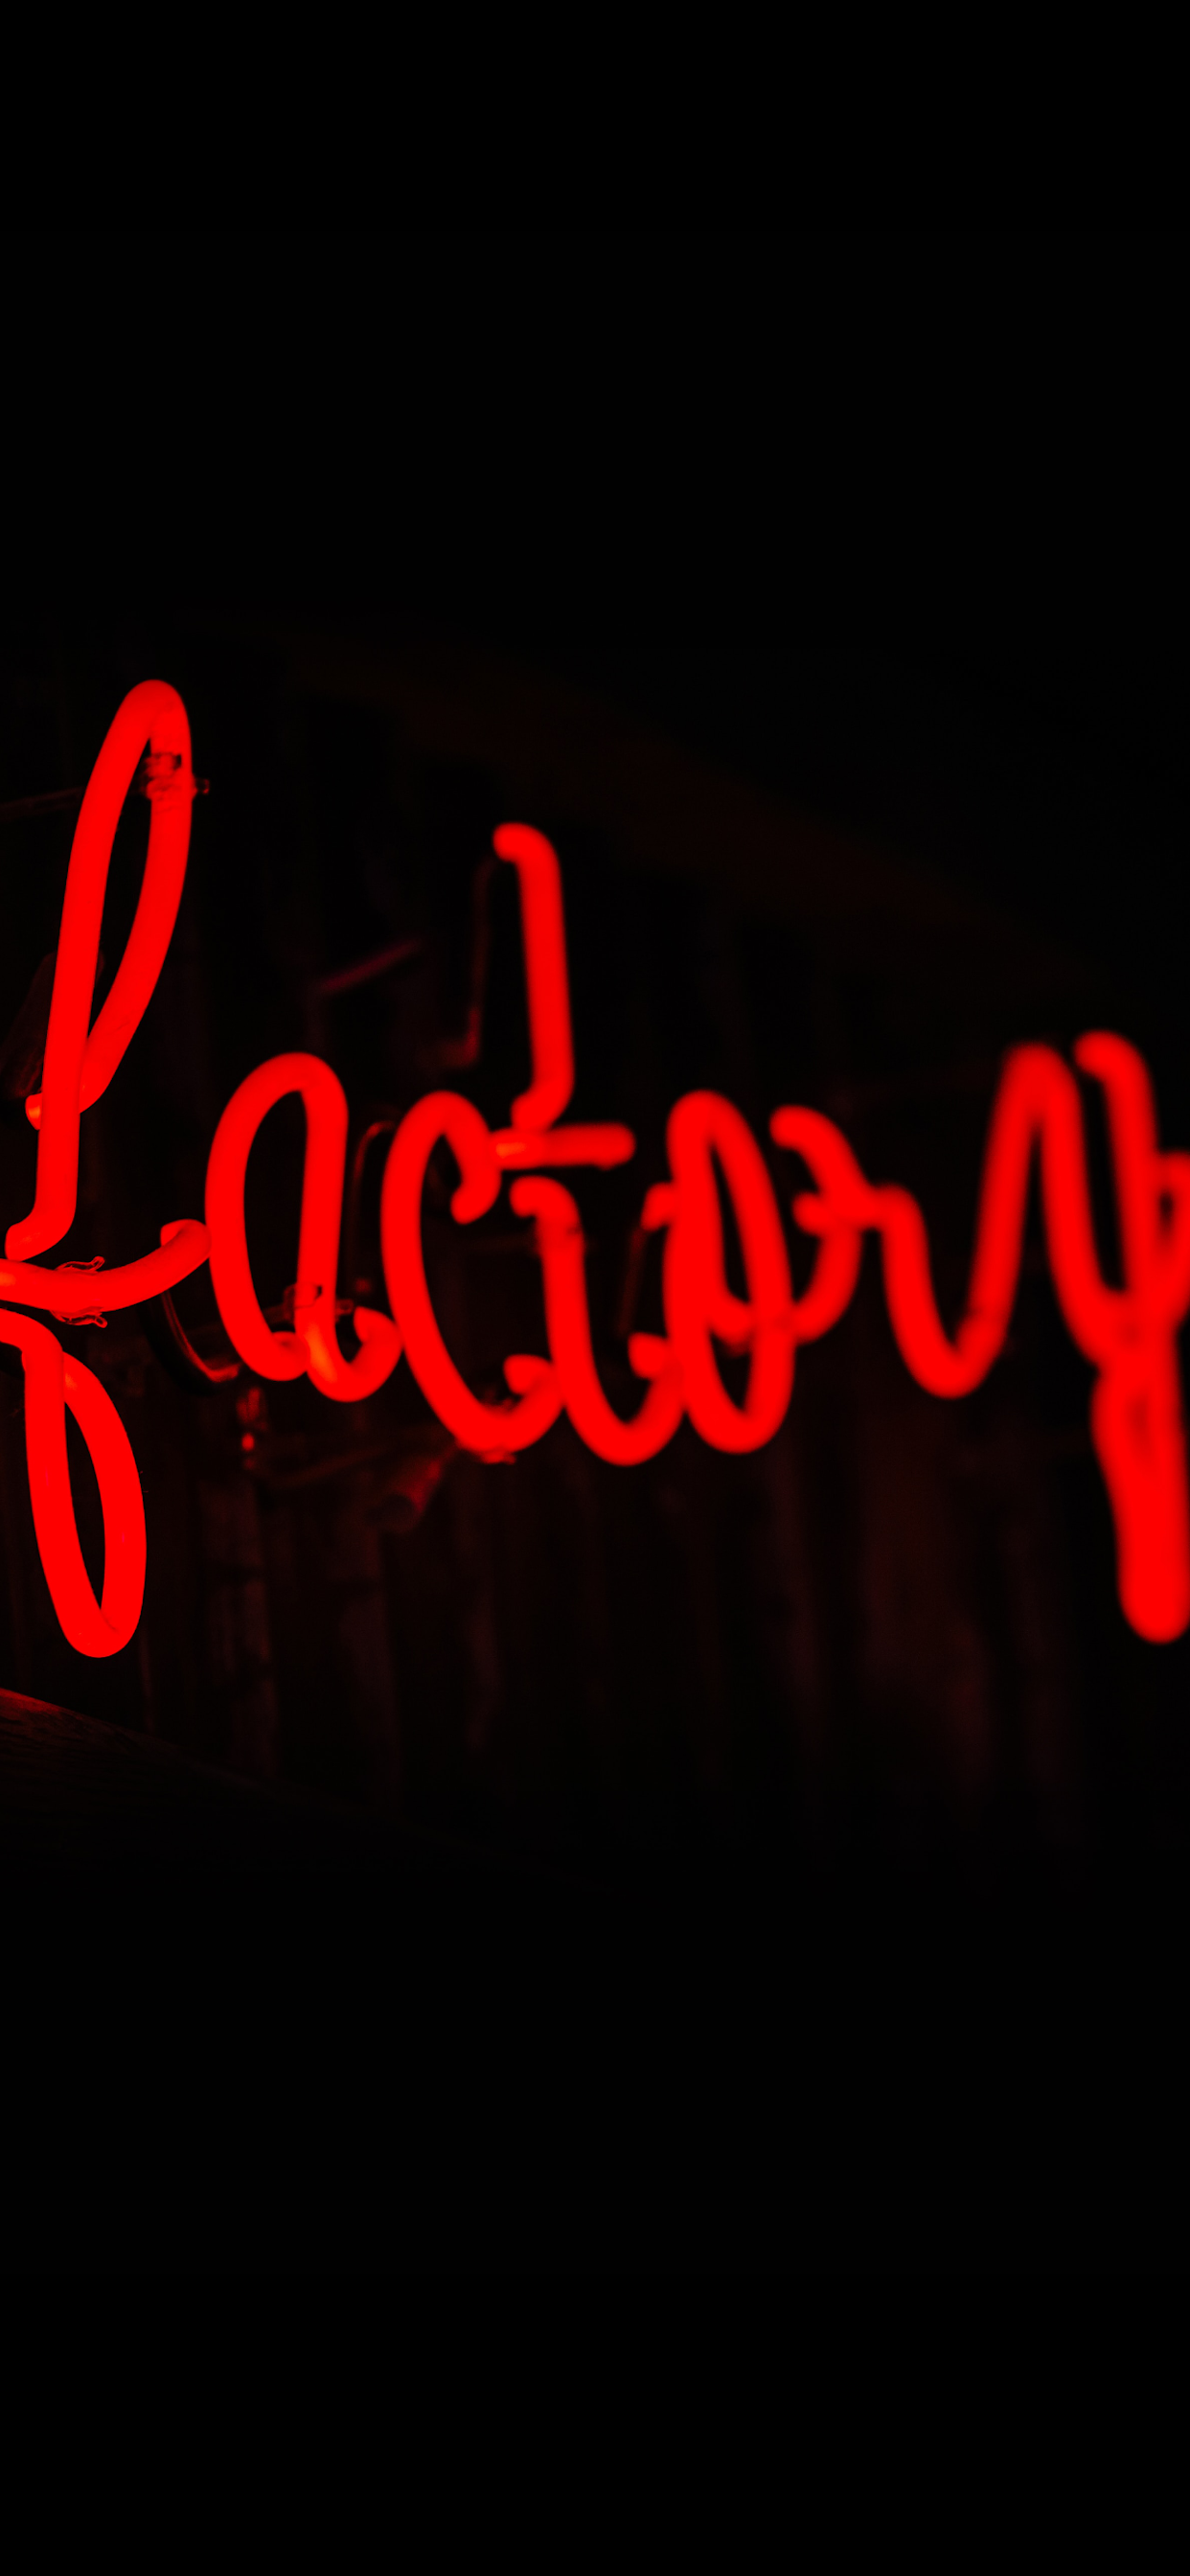 iPhone wallpapers neon sign factory Neon Sign